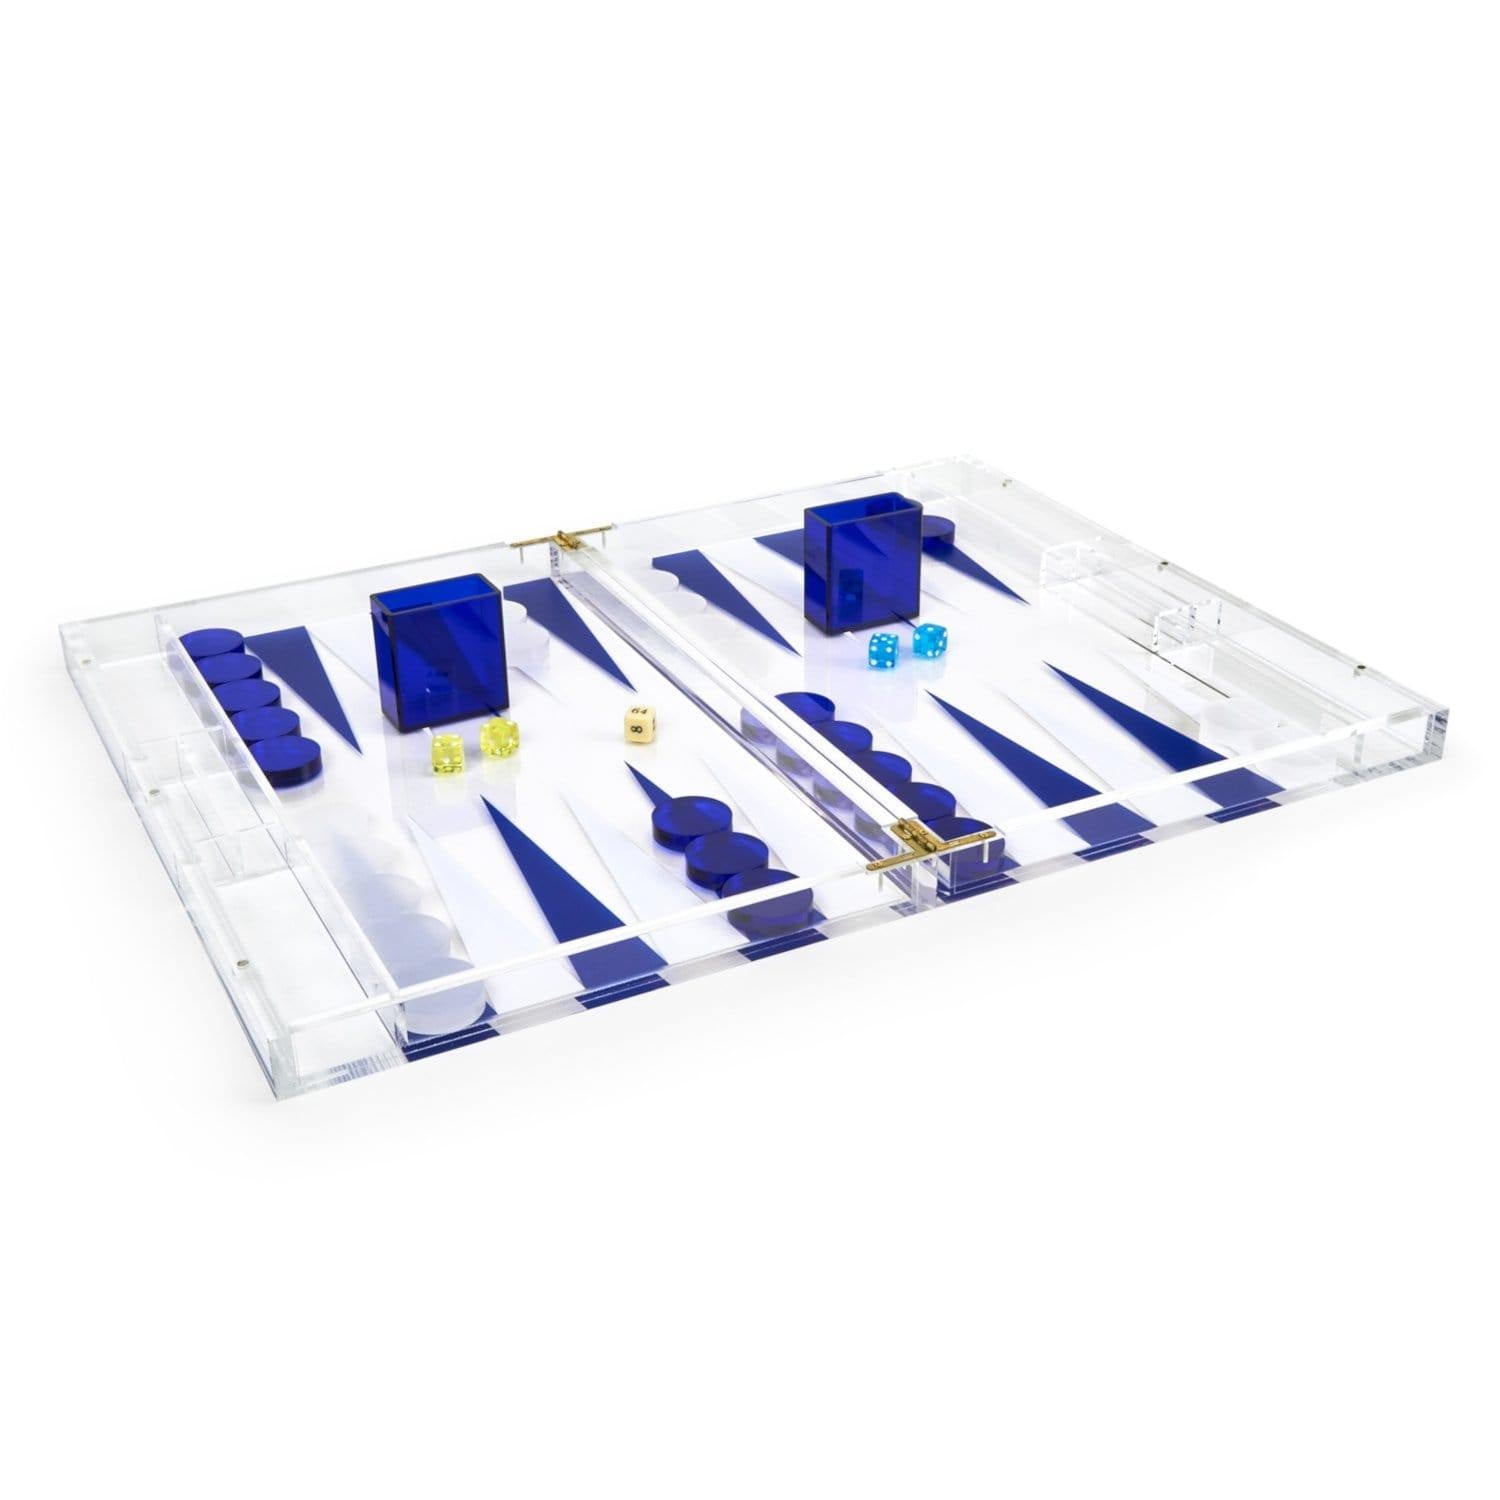 Ultramarine Acrylic Backgammon Game